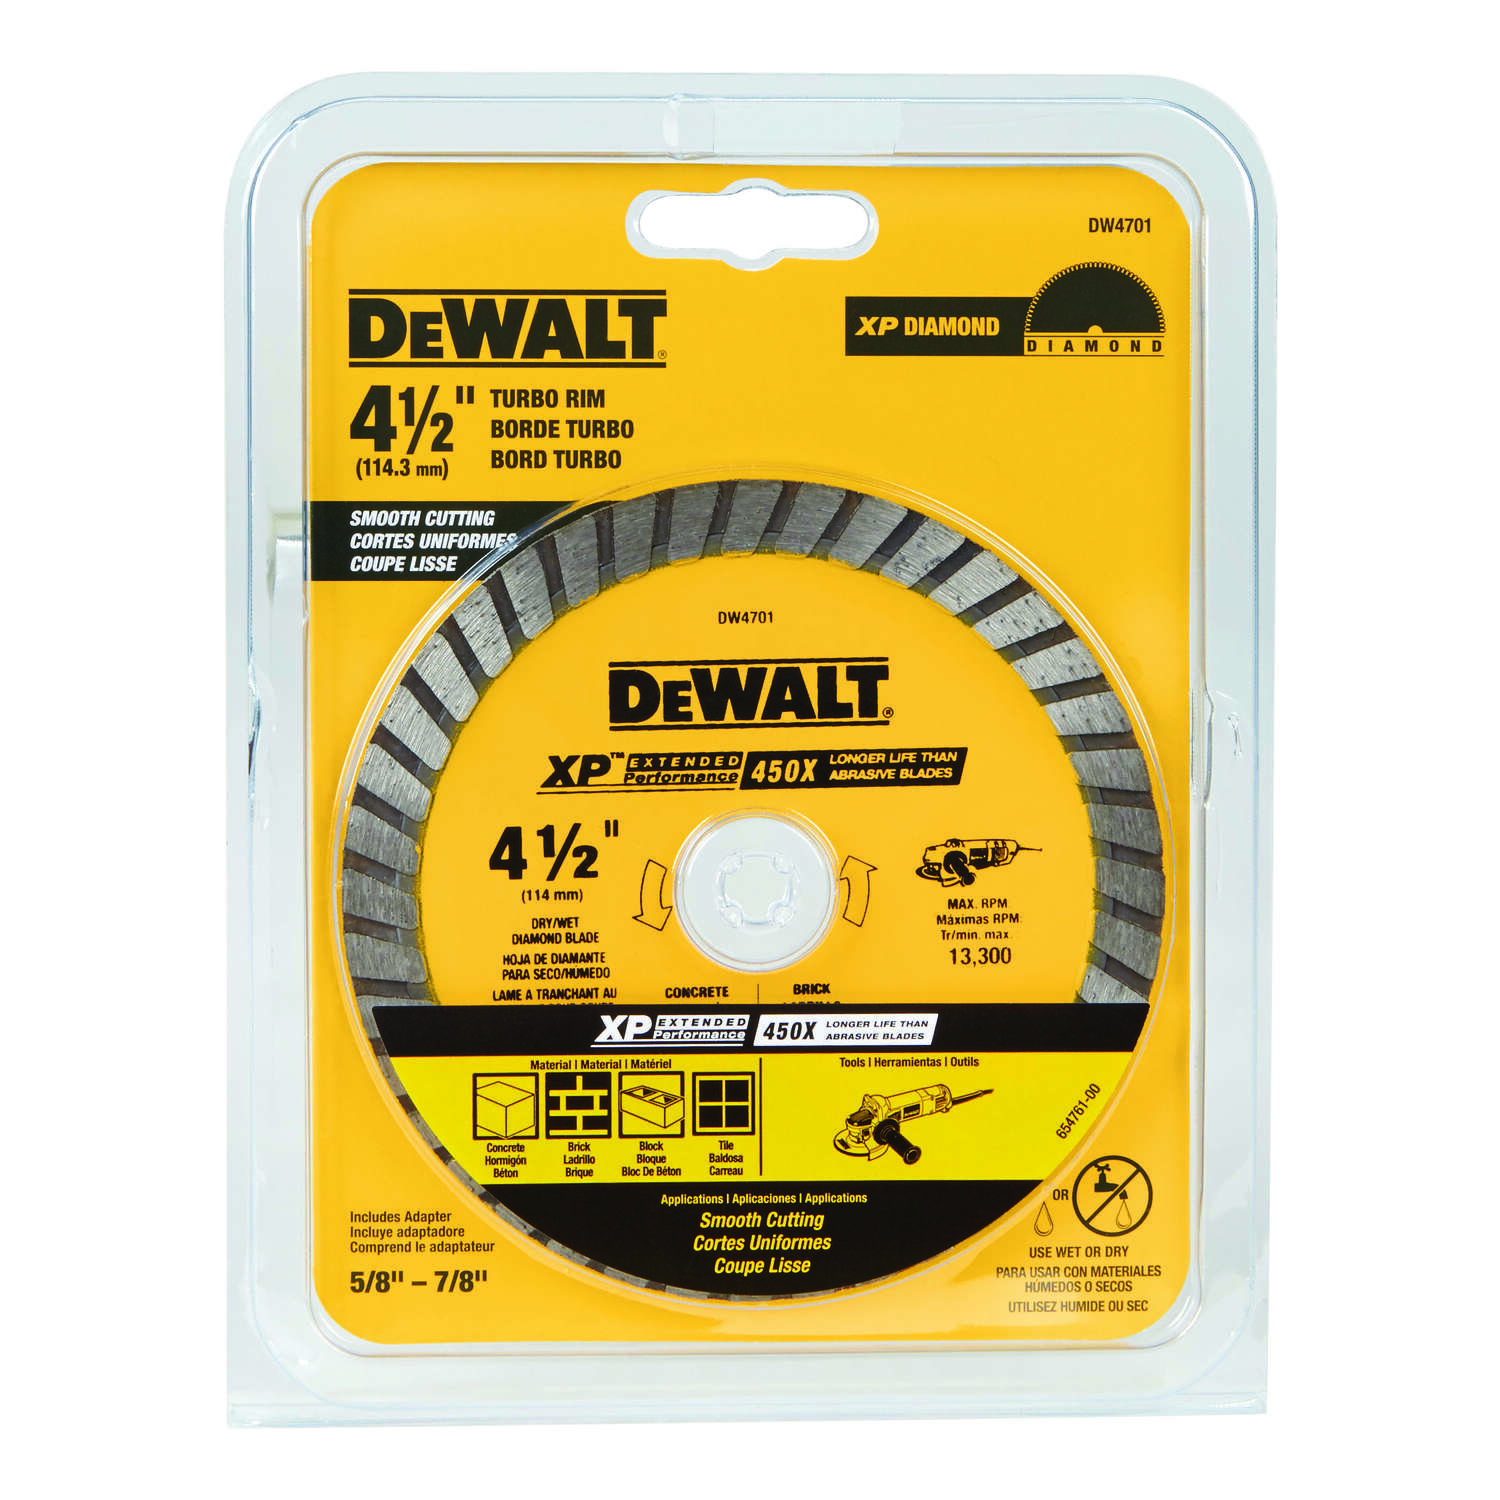 DeWalt  0.06 in.  Diamond  4-1/2 in.  Masonry Blade  1 pk XP Extended Performance  7/8 in.